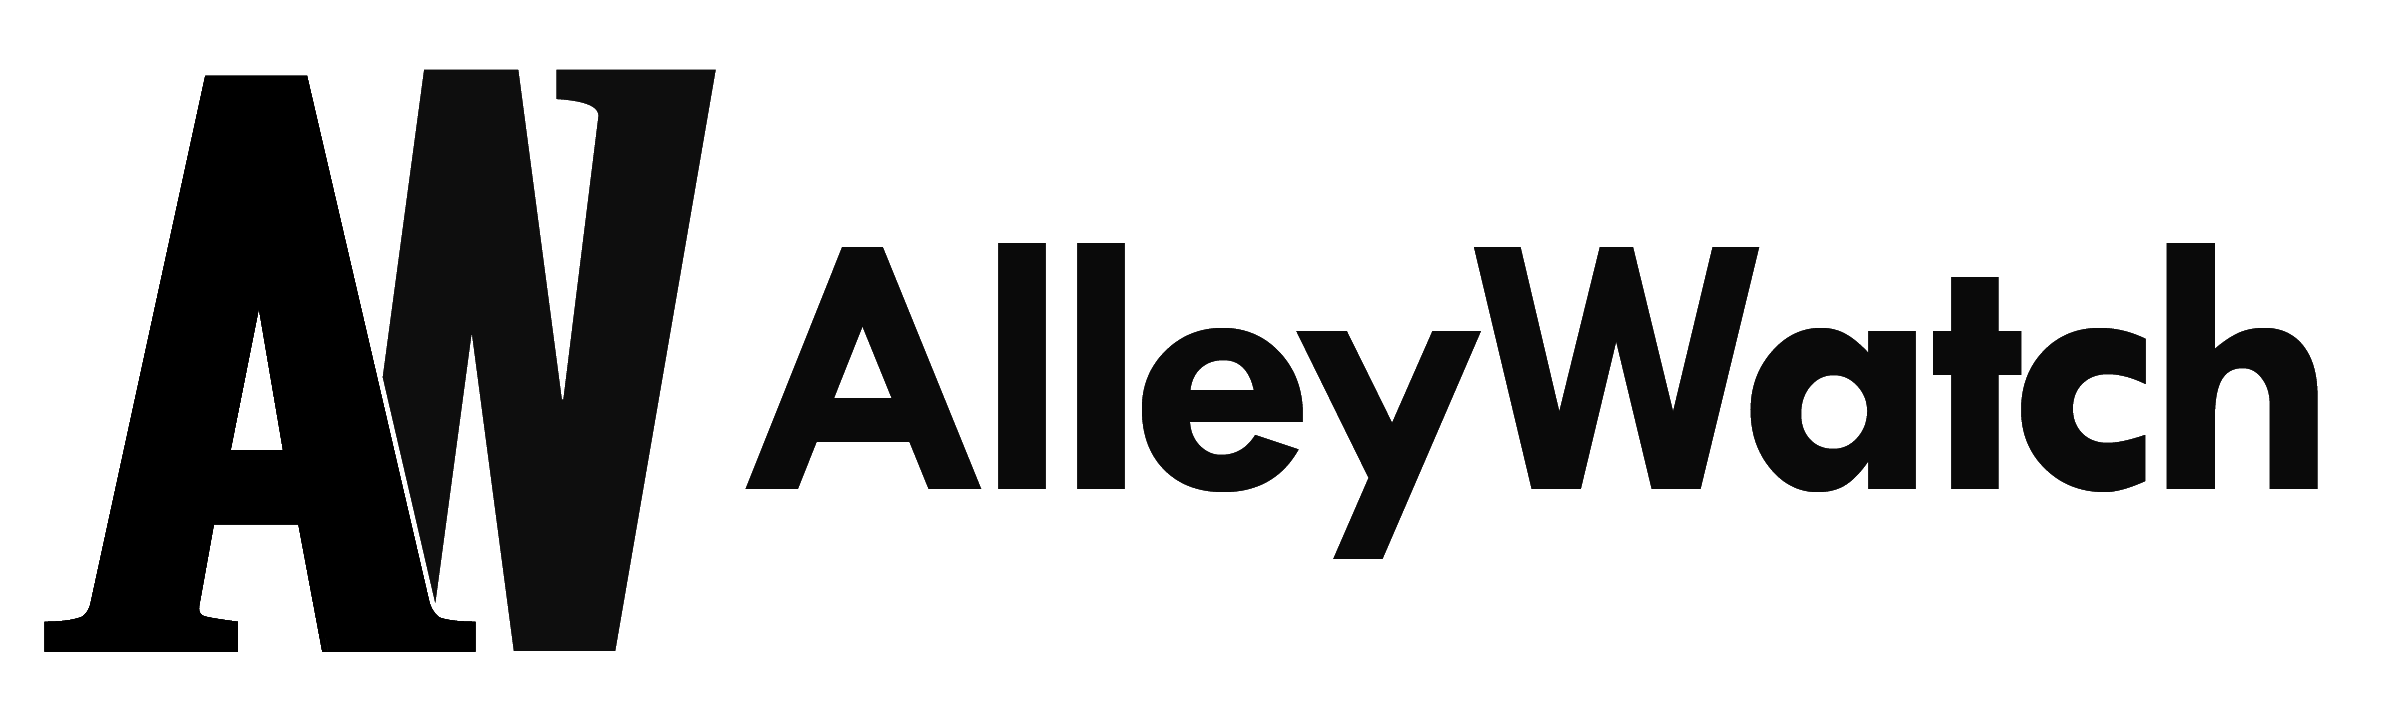 Alleywatch